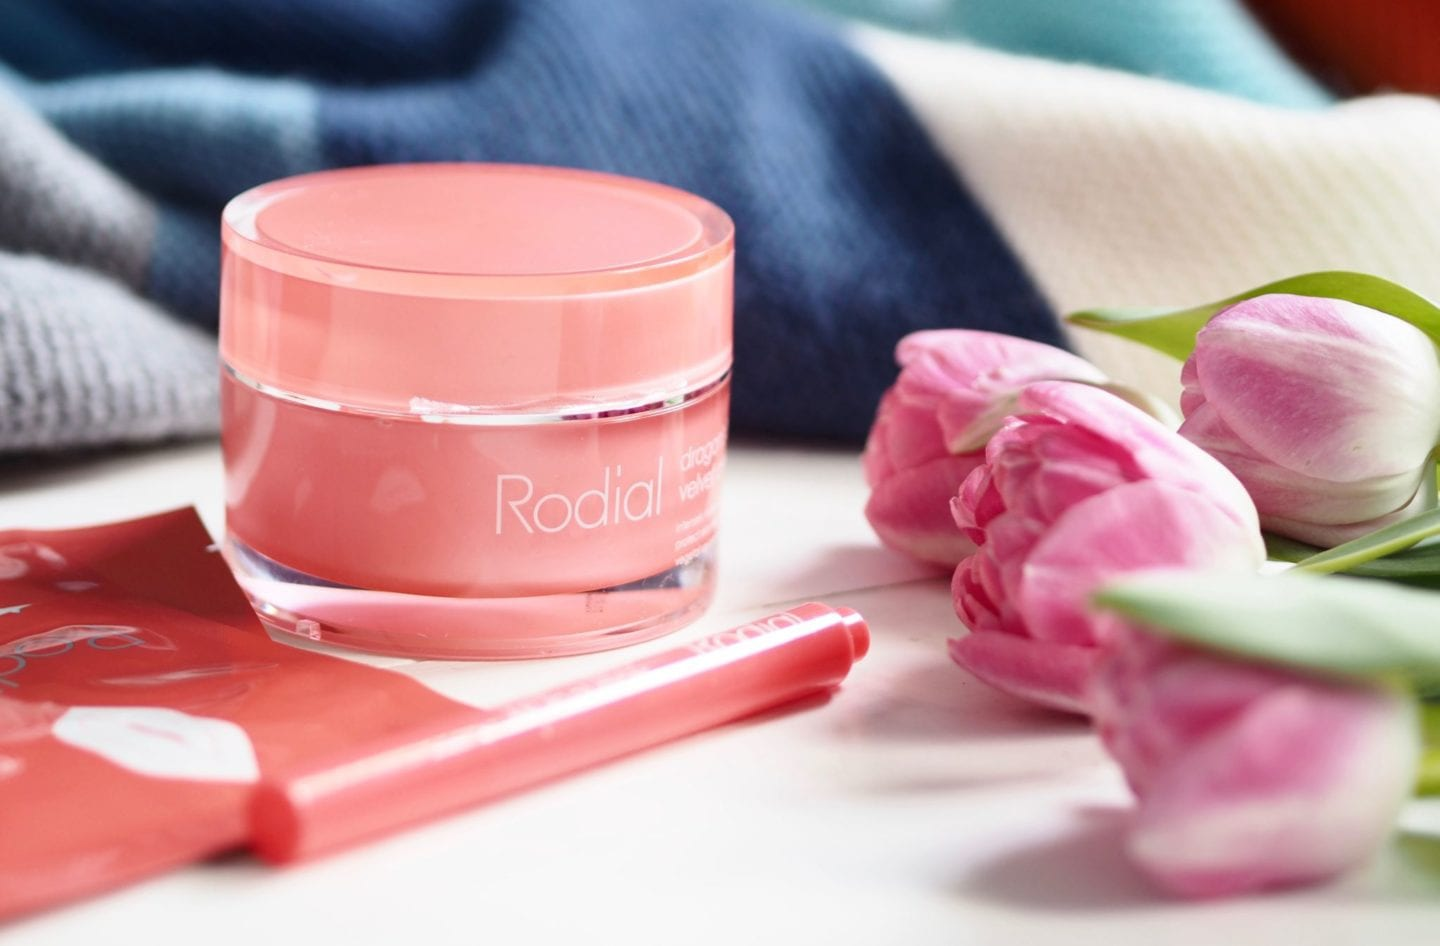 Rodial Skin Care